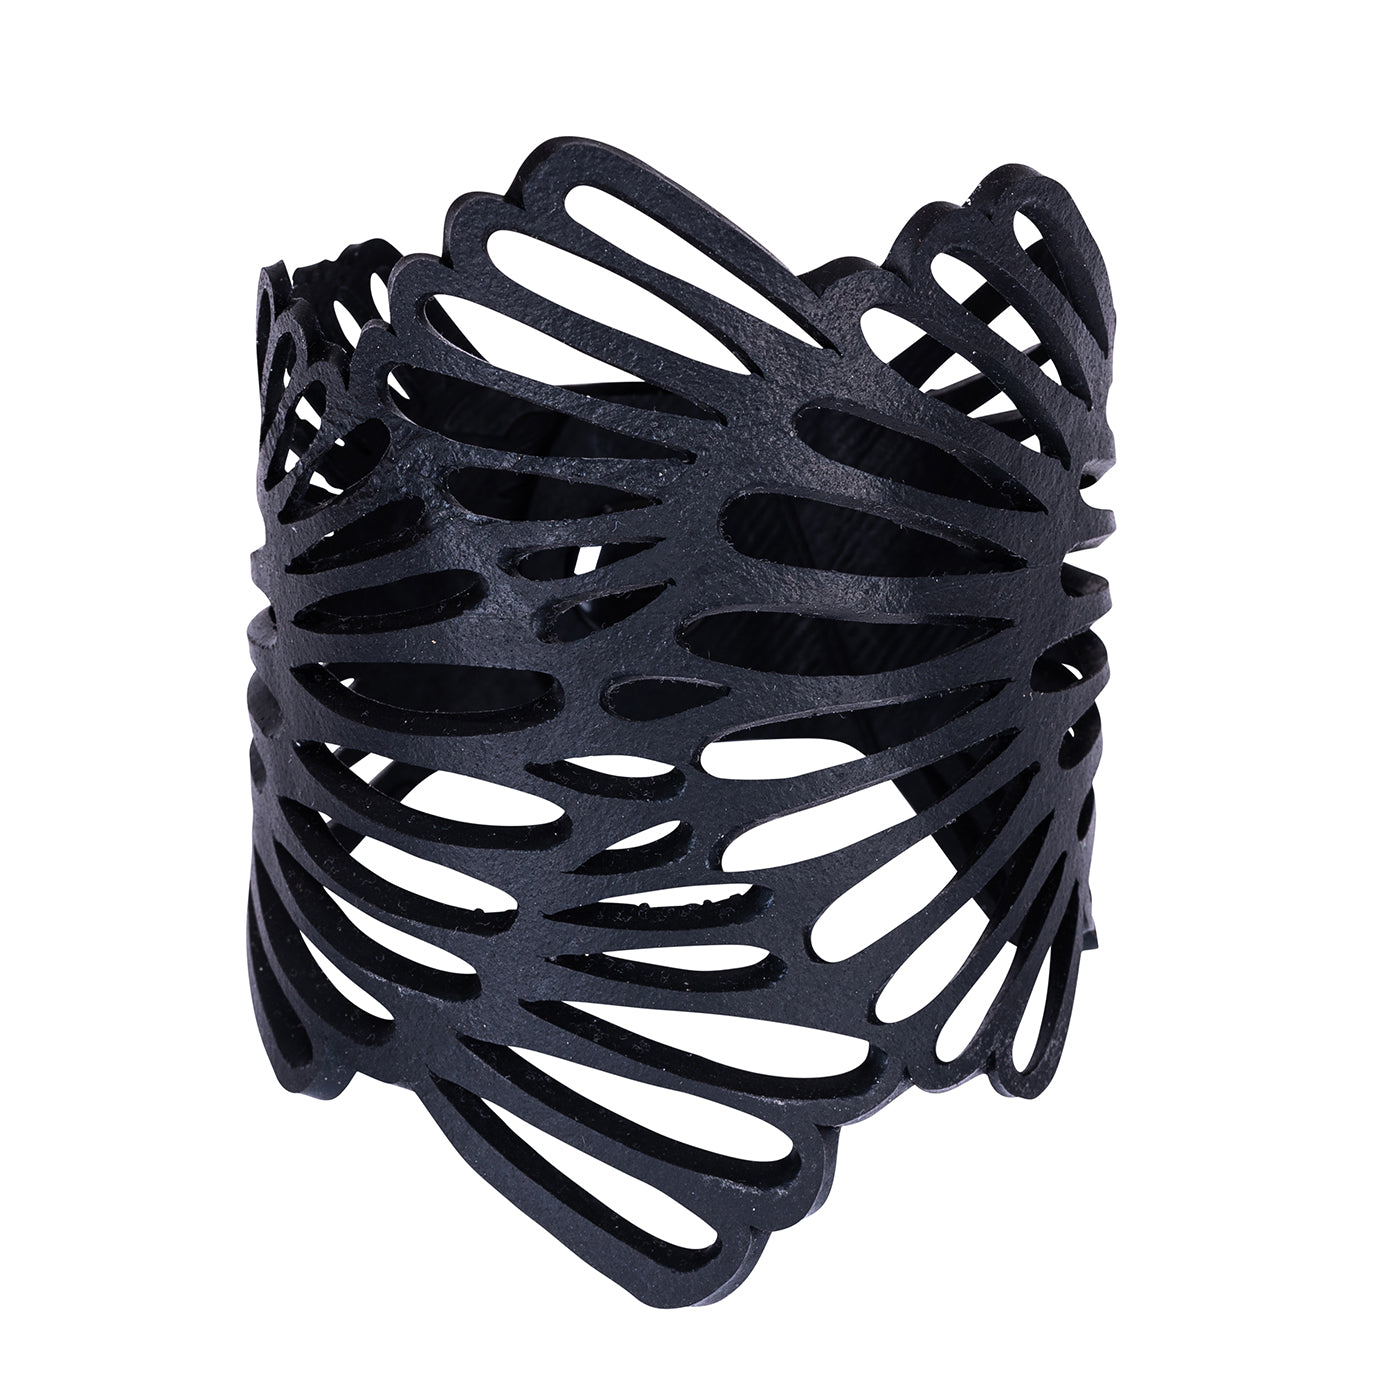 Dianne Recycled Rubber Bracelet by Paguro Upcycle